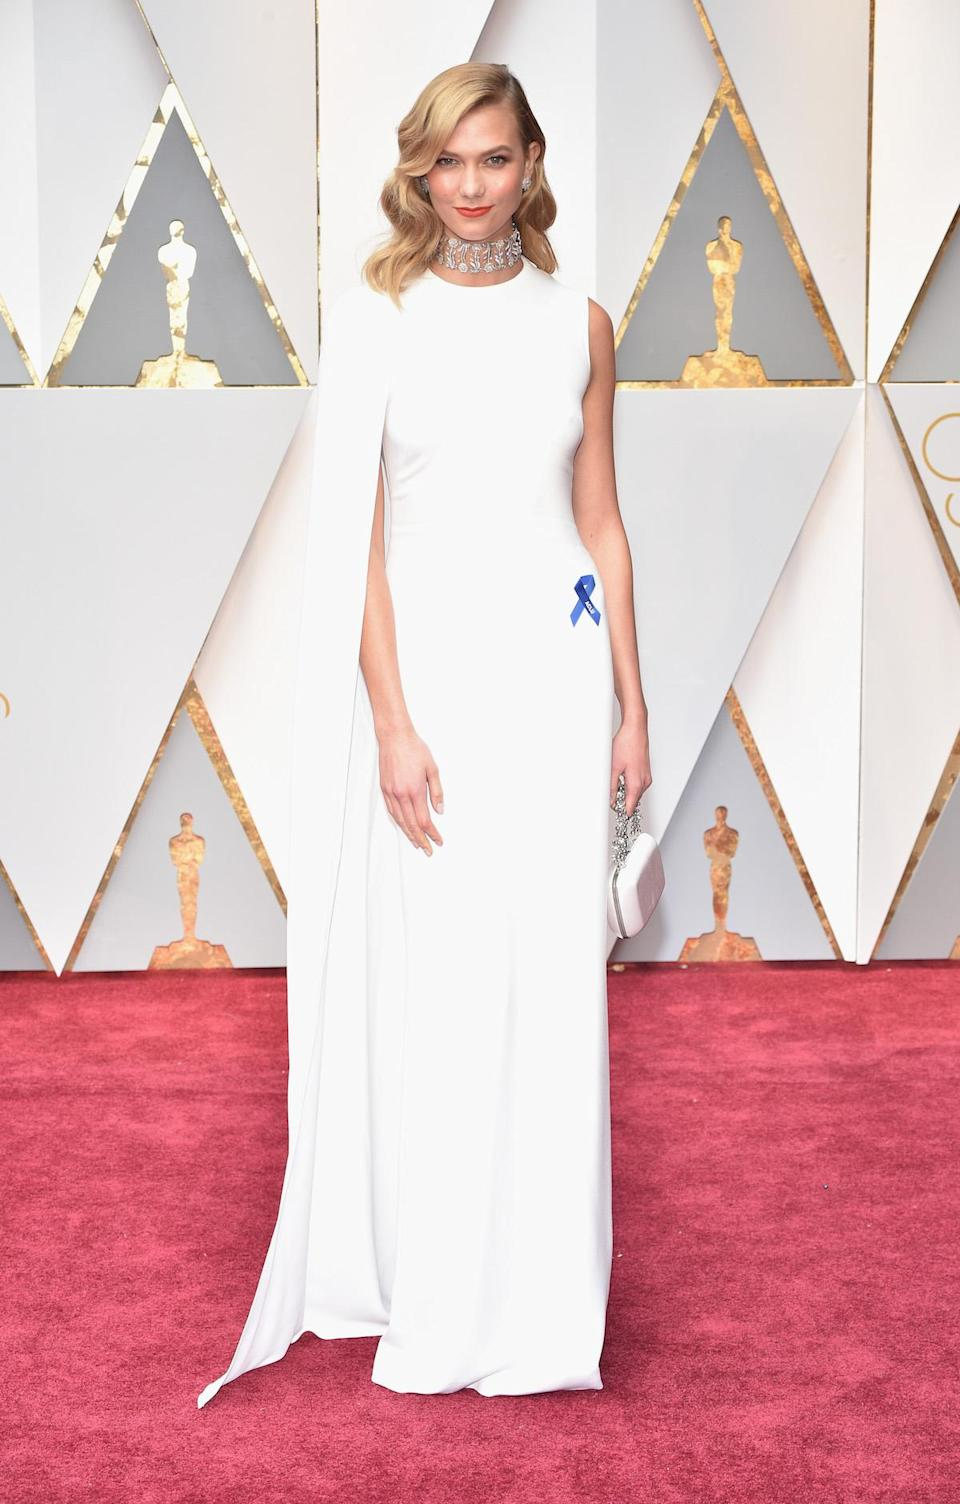 "<p><a href=""https://www.yahoo.com/style/was-karlie-kloss-oscars-look-inspired-by-gwyneth-paltrow-010309795.html"" data-ylk=""slk:Karlie Kloss might've stolen her style from Gwyneth Paltrow;outcm:mb_qualified_link;_E:mb_qualified_link;ct:story;"" class=""link rapid-noclick-resp yahoo-link"">Karlie Kloss might've stolen her style from Gwyneth Paltrow</a> but it totally paid off. <em>(Photo: Getty Images)</em> </p>"